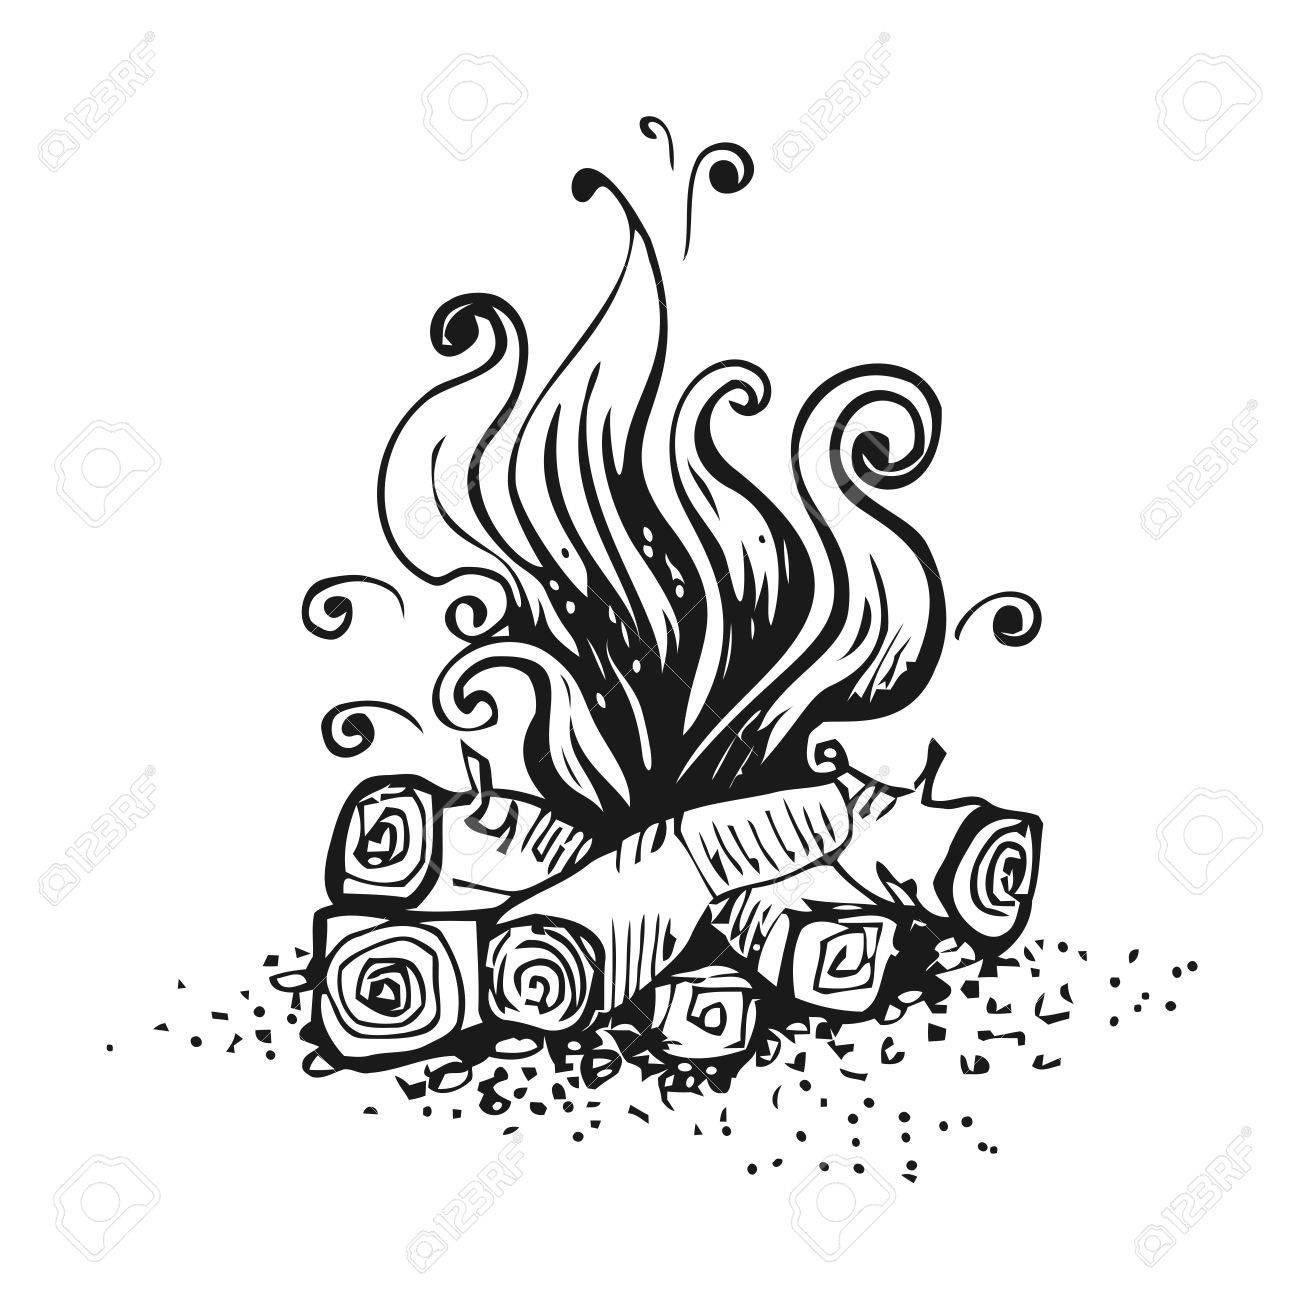 Campfire Fire Over Wood Logs Black And White Graphic Vector Black And White Drawing Campfire Drawing Fire Drawing